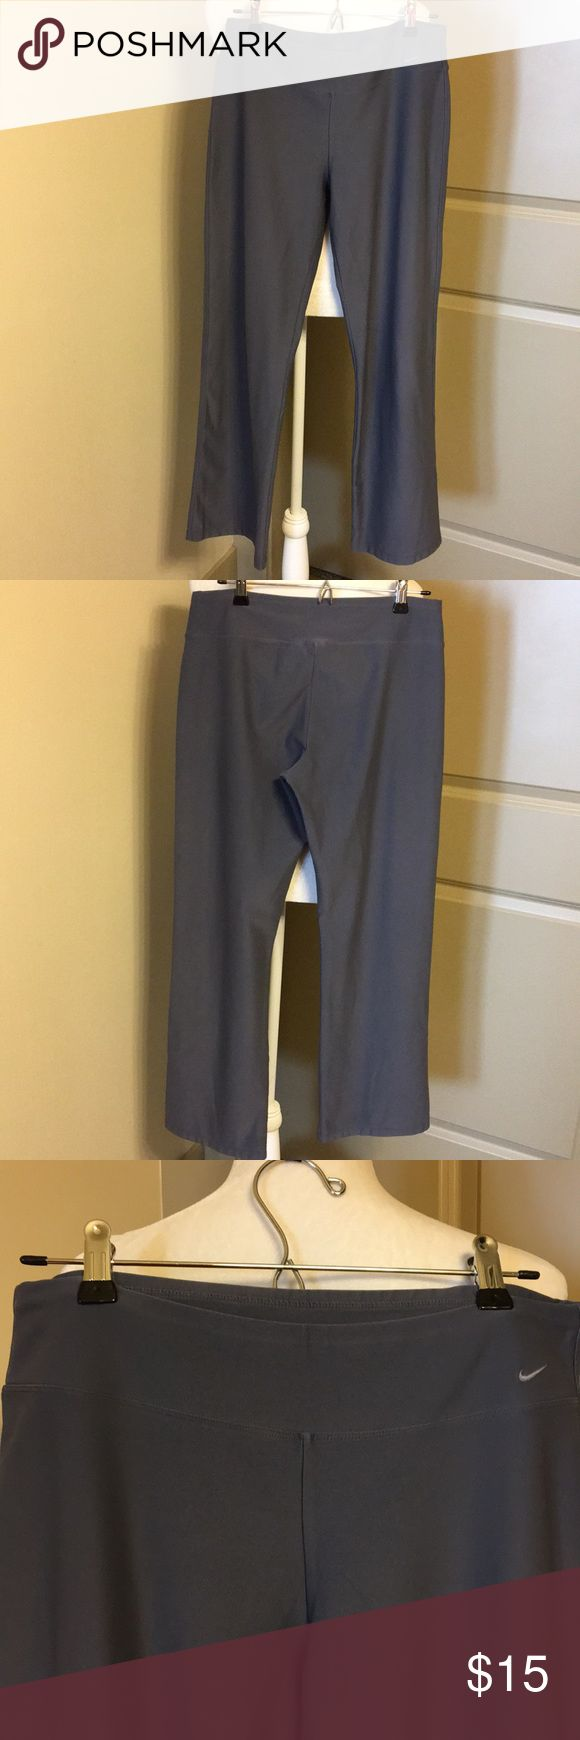 Nike yoga pant Basic dark grey Nike yoga or stretch pant. Slight flair to the bottoms and wide comfortable waistline that sits on the hips. They are in very good condition. Nike Pants Track Pants & Joggers